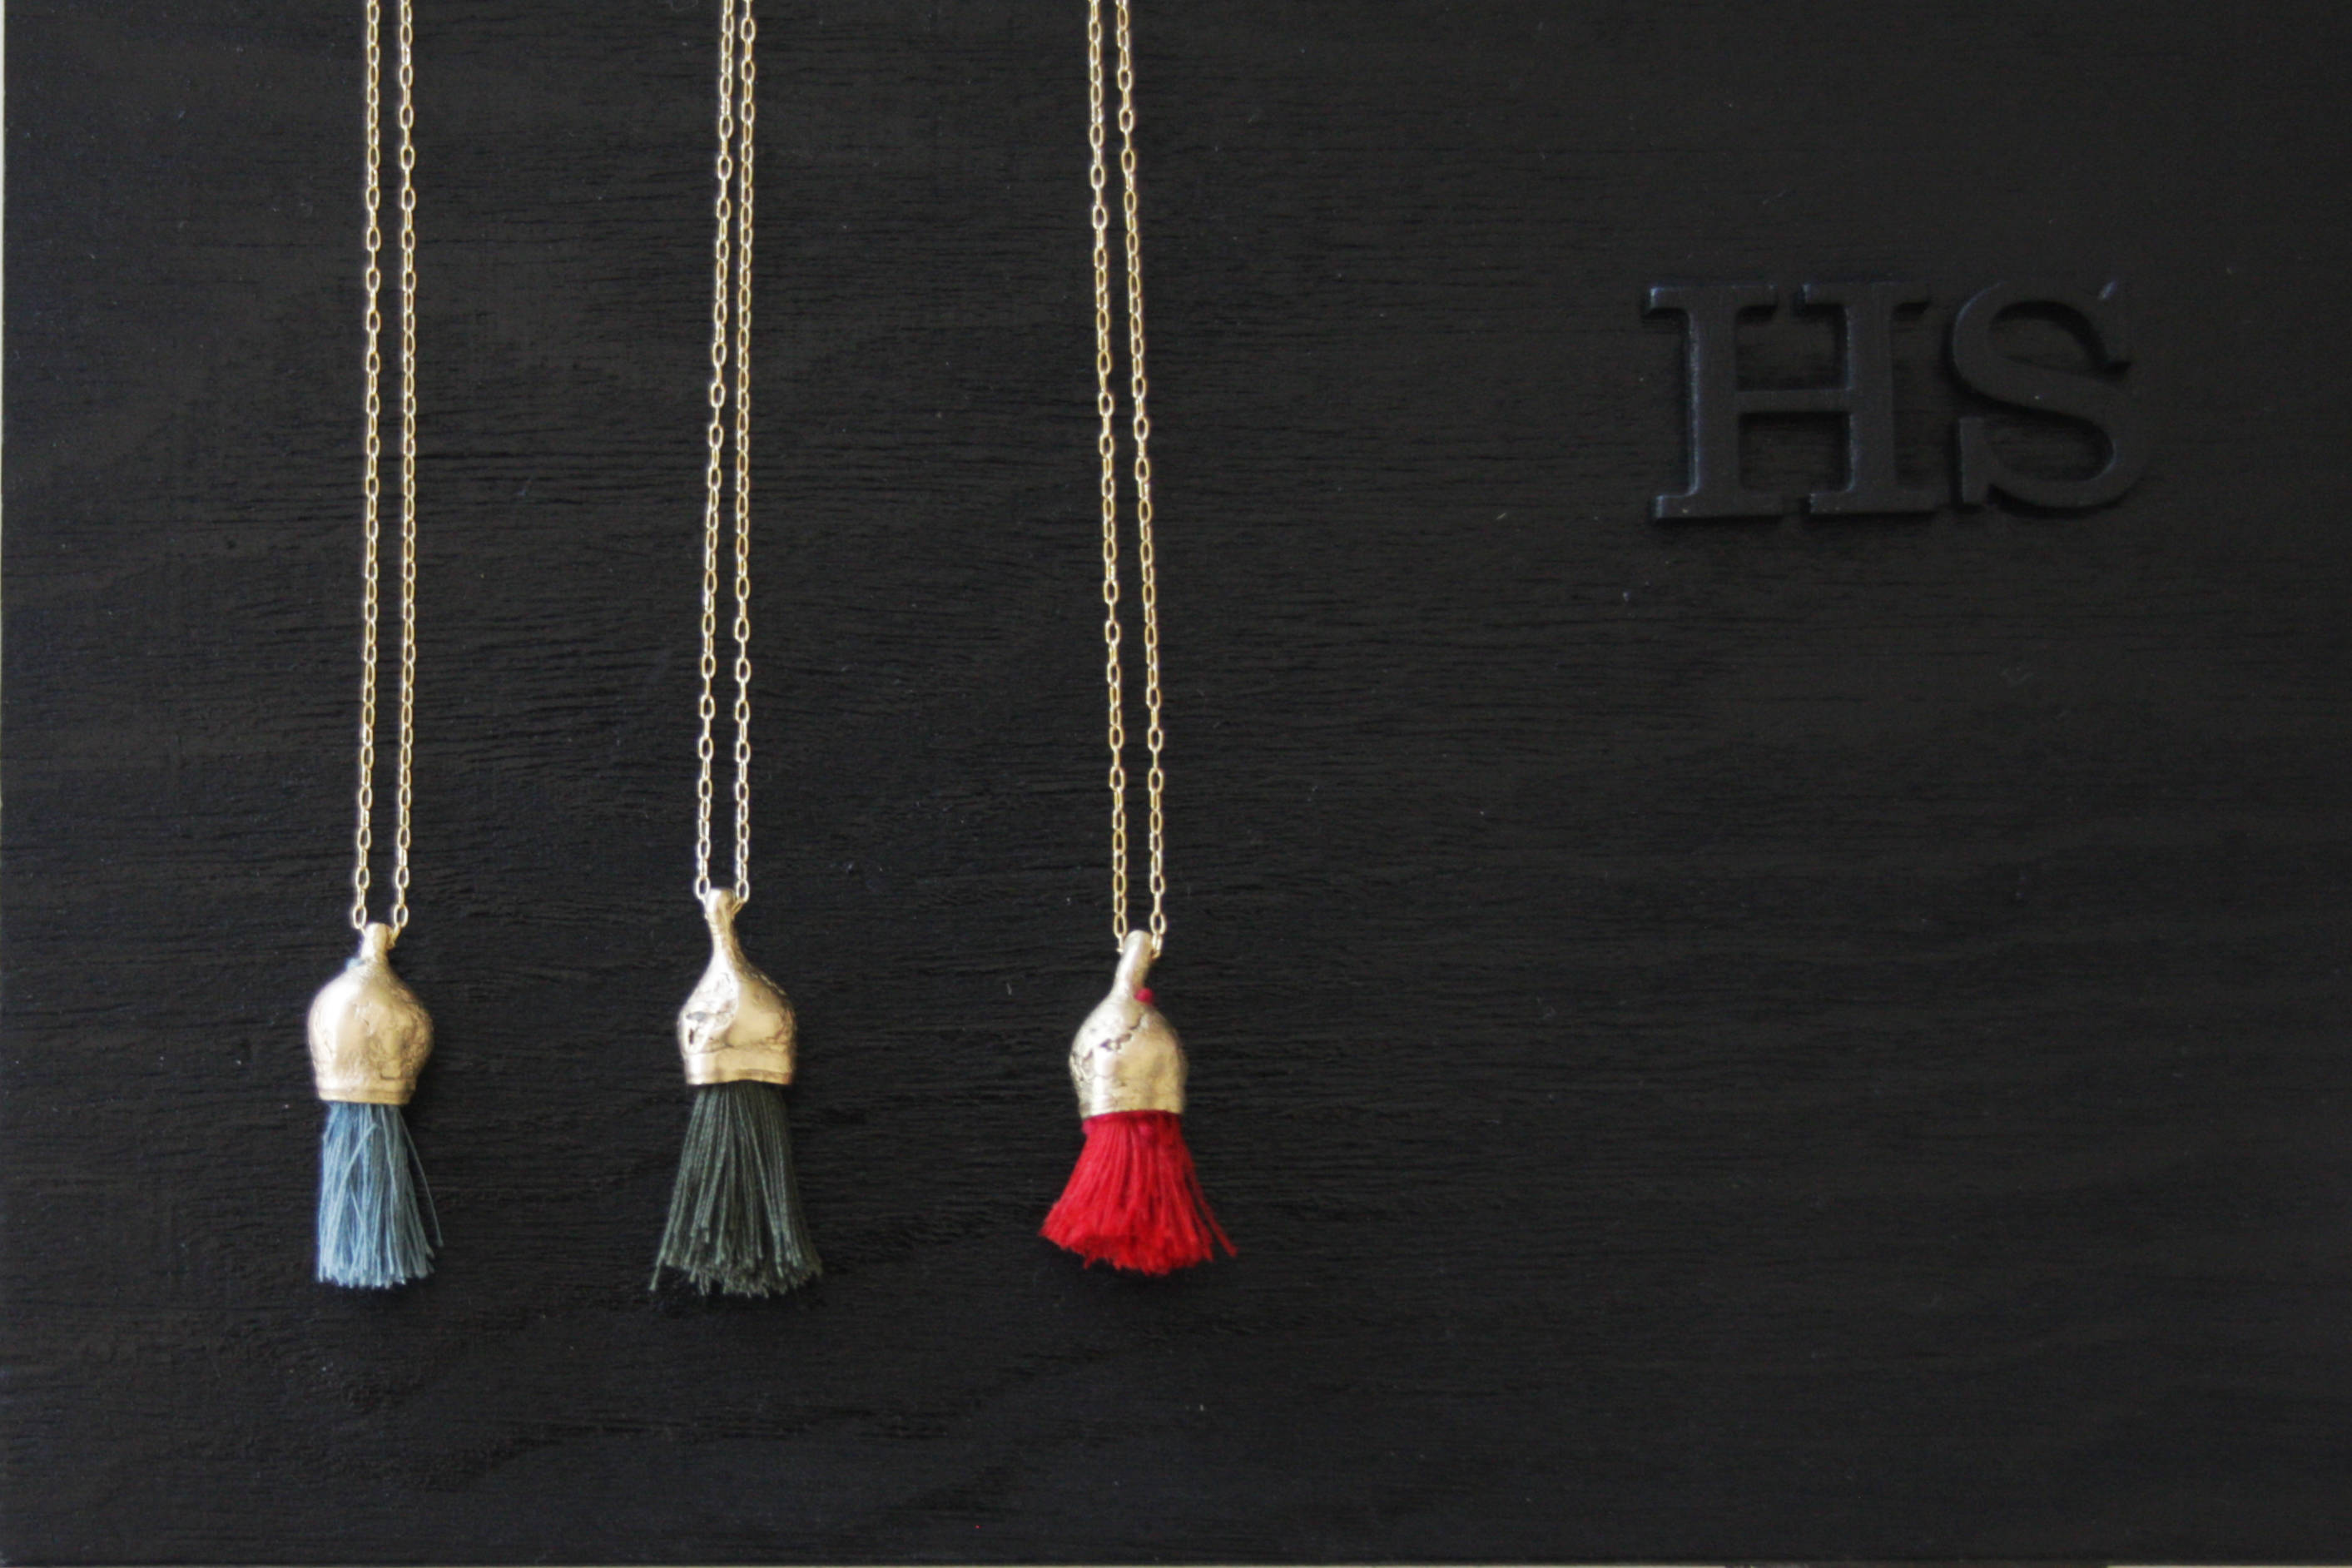 Nature Jewelry / Tassel Necklace / Organic Pendant / Blue Necklace - hs